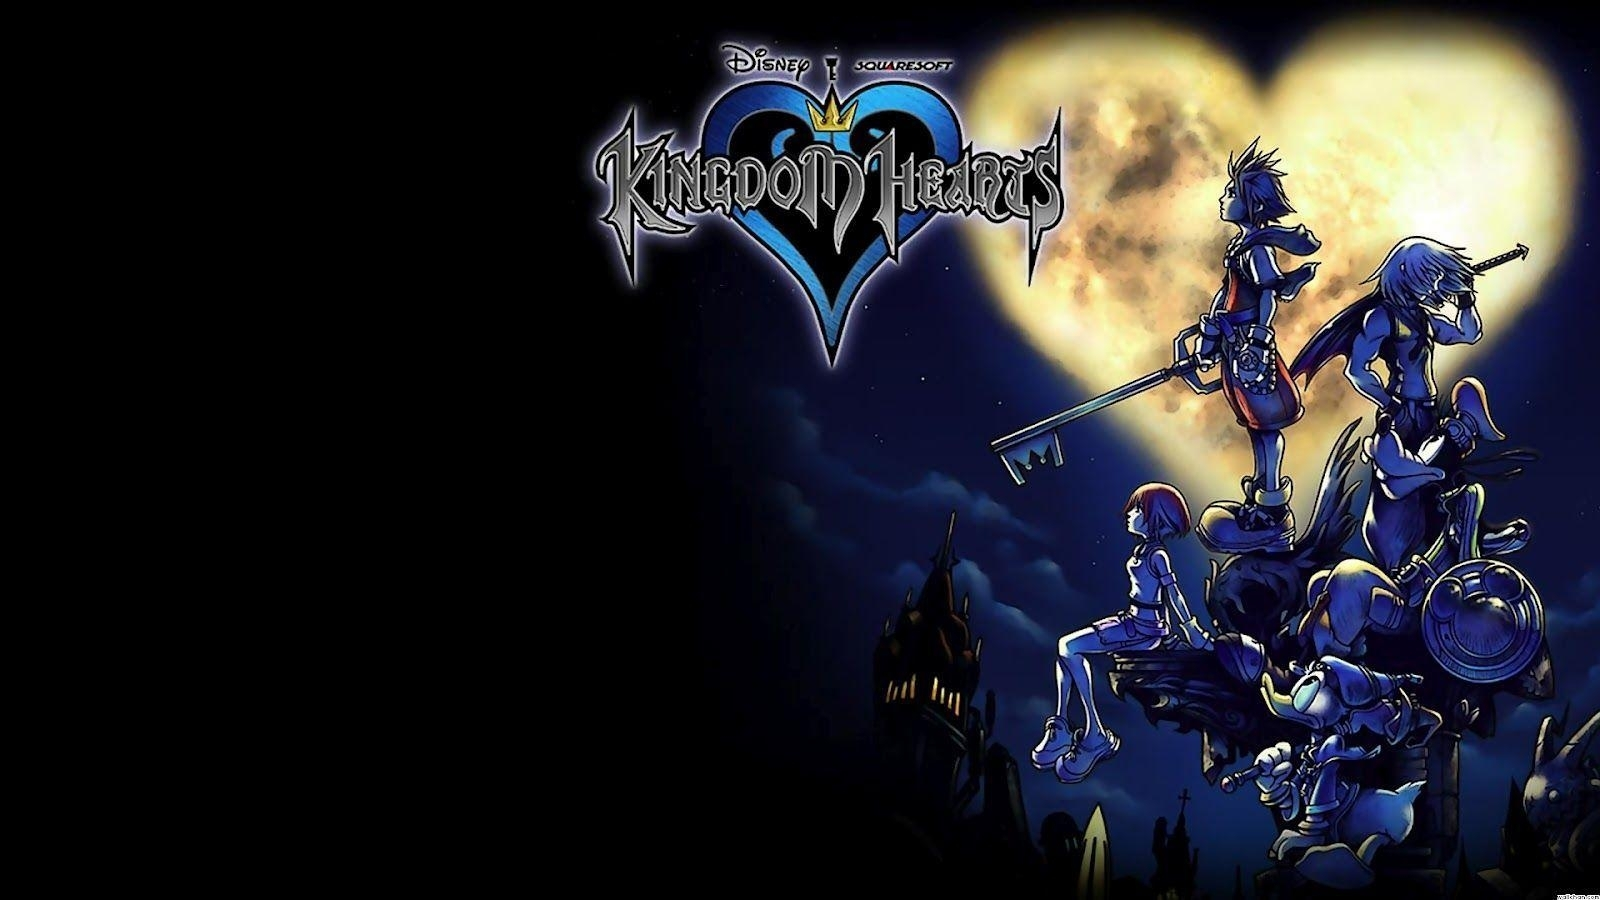 kingdom hearts 1 wallpapers - wallpaper cave